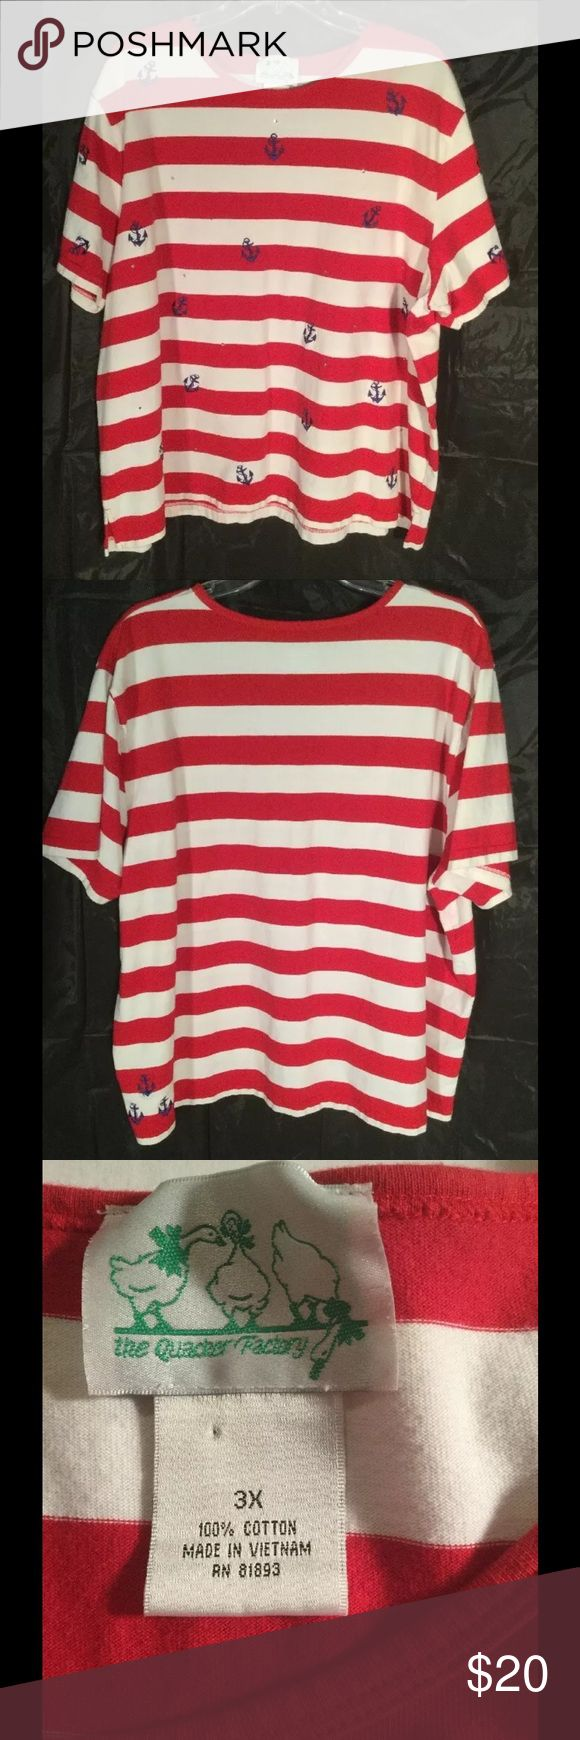 """2X PLUS SIZE TOP NAUTICAL THEME SHORT SLEEVE Great looking woman's plus size crew neck pullover shirt blouse. Nautical theme with blue anchor and rhinestones. Bold red stripes. 100% cotton. Tag size 3X.  pit to pit: 27"""" length: 26.5"""" short sleeves the quacker factory Tops Tees - Short Sleeve"""